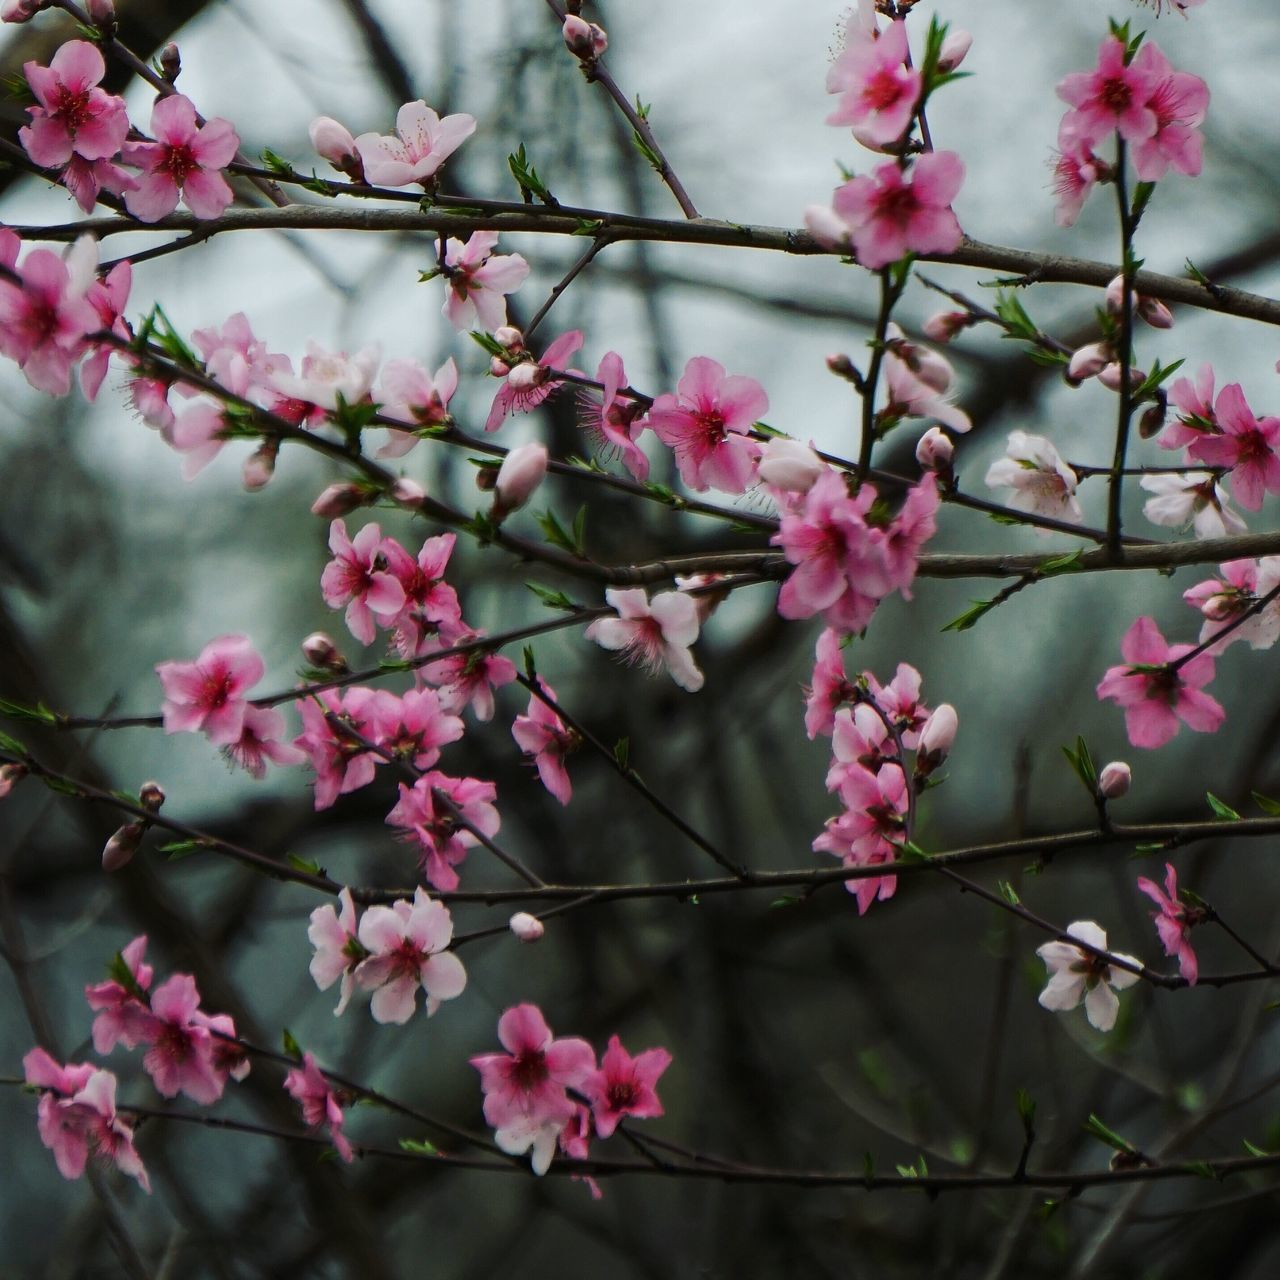 Spring fling Flowers Signs Of Spring Spring Flowers Cheery Cheer On A Gloomy Day Delight In Sight Delight  Pink Flowers